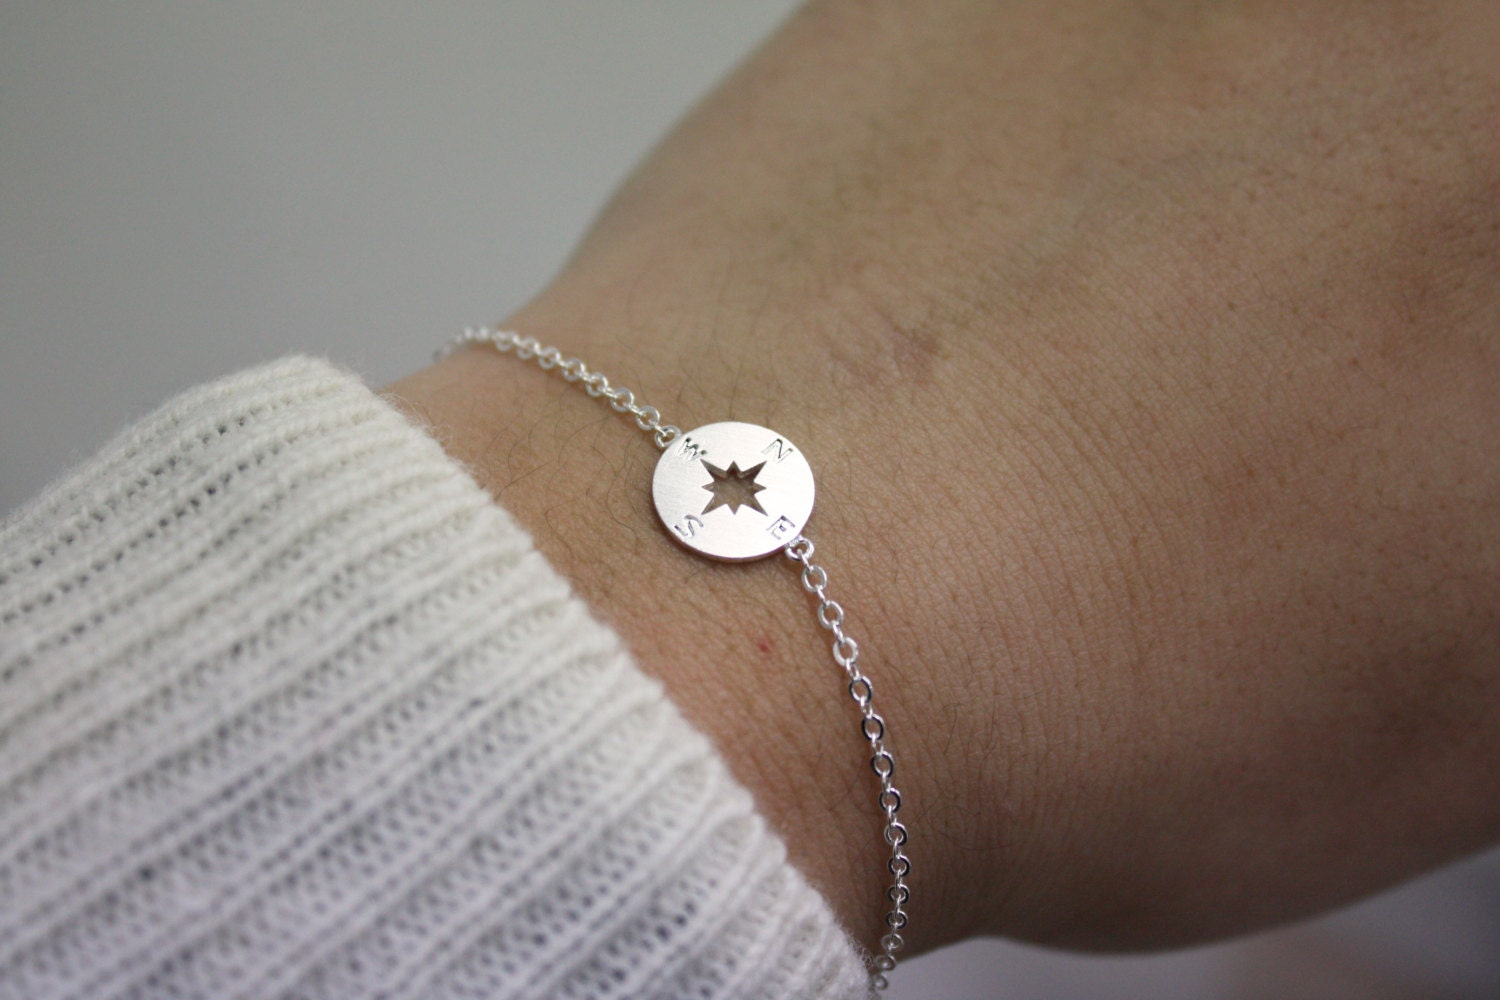 bound bracelet mini evydesigns product compass homeward evy by designs original